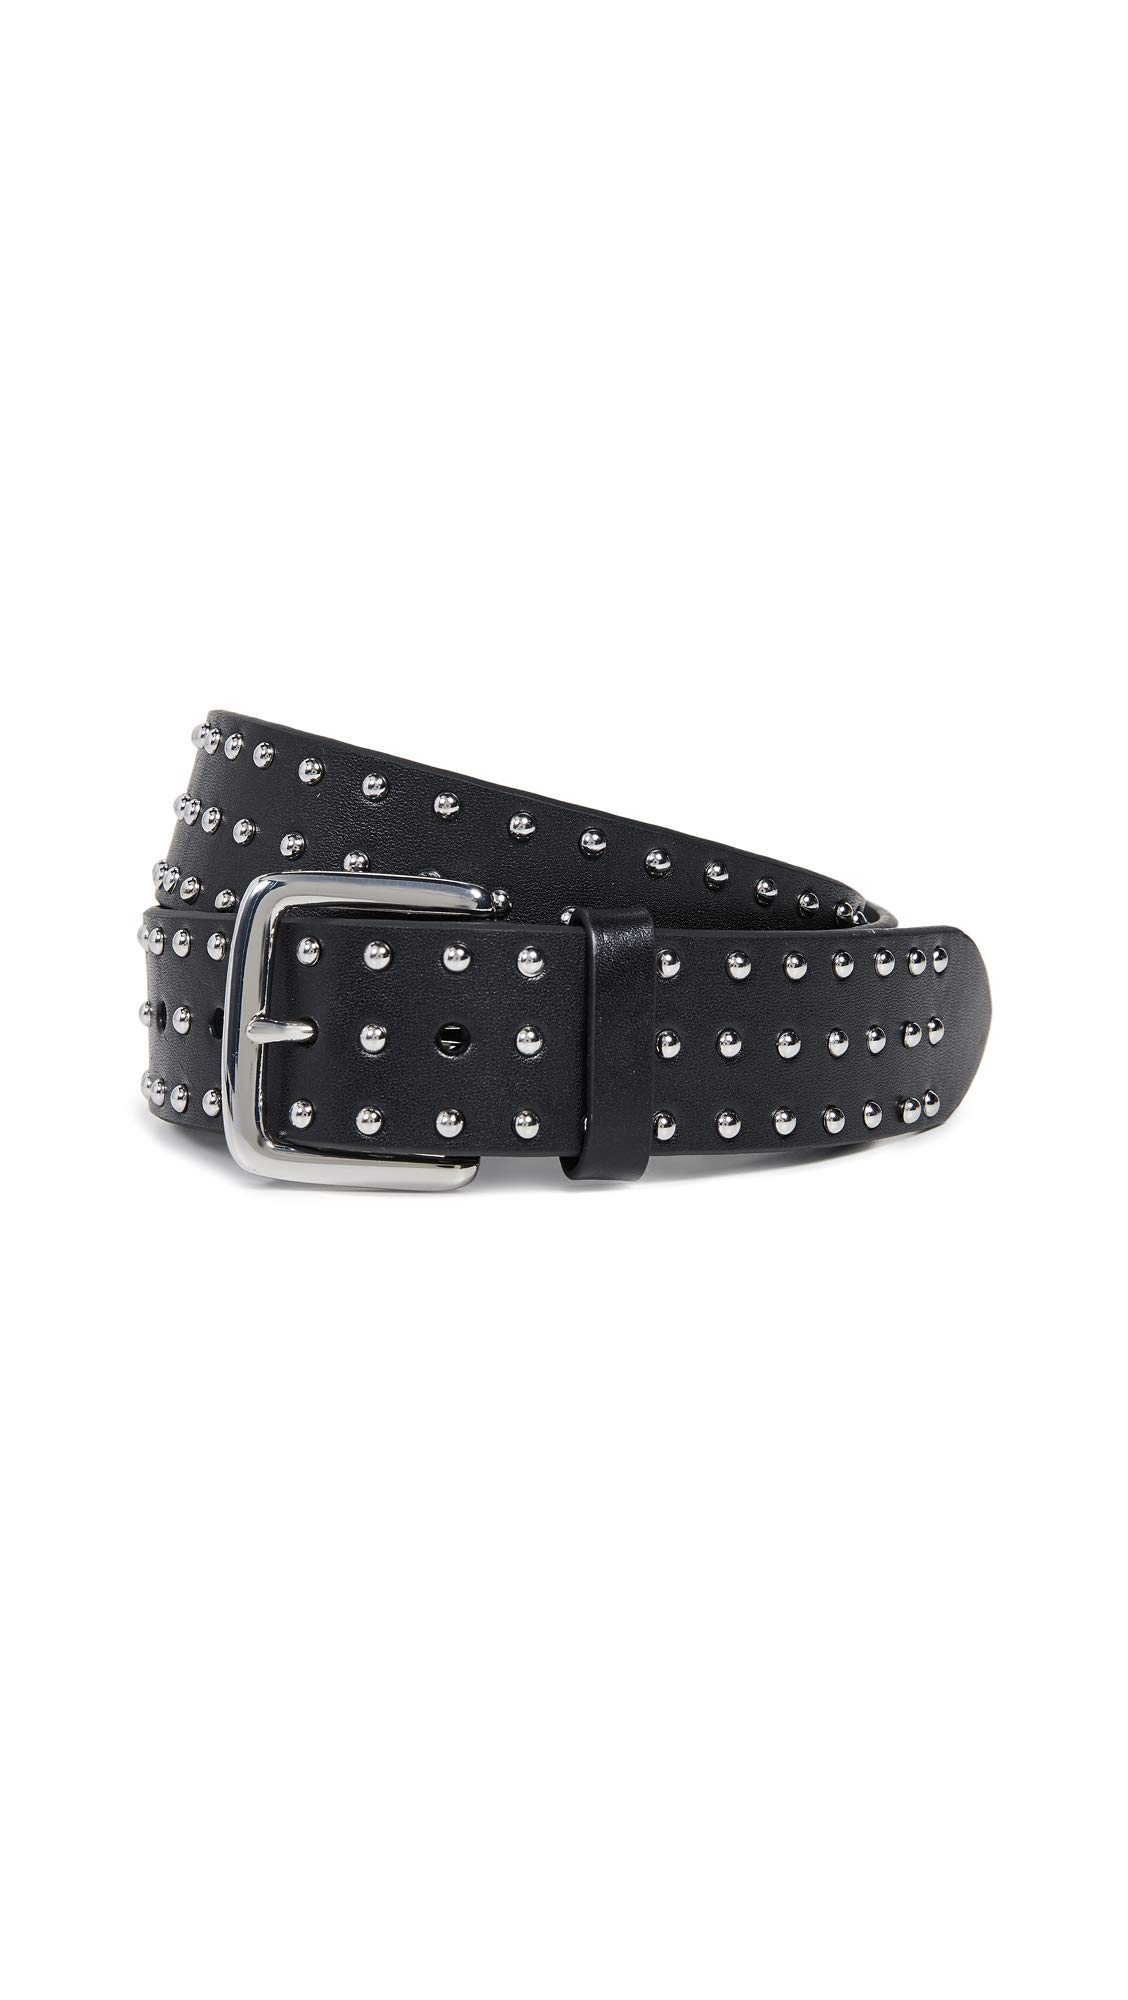 FRAME Women's Studded Leather Belt, Noir, Black, Small